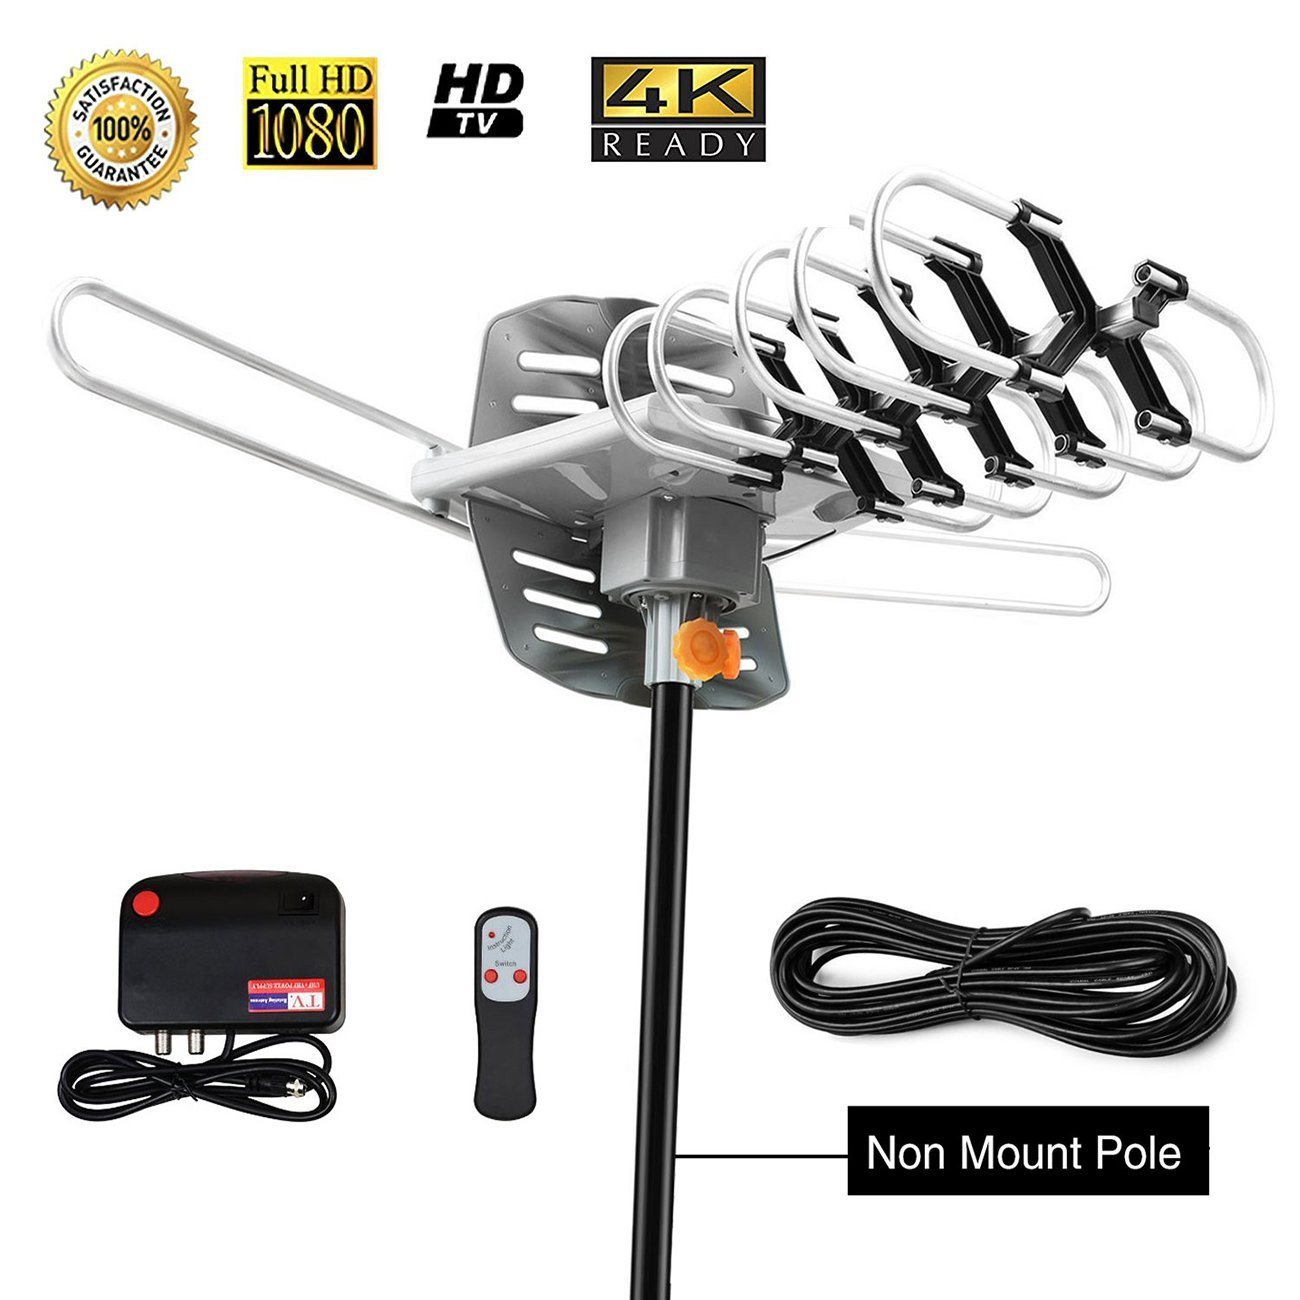 HD TV Antenna,Sobetter Amplified Outdoor 150 Mile Range Digital TV Antenna with UHF/VHF/FM - 360°Rotation - High Performance Outdoor Antenna for digital TV, 32.8-Feet Coax cable(Without Pole)